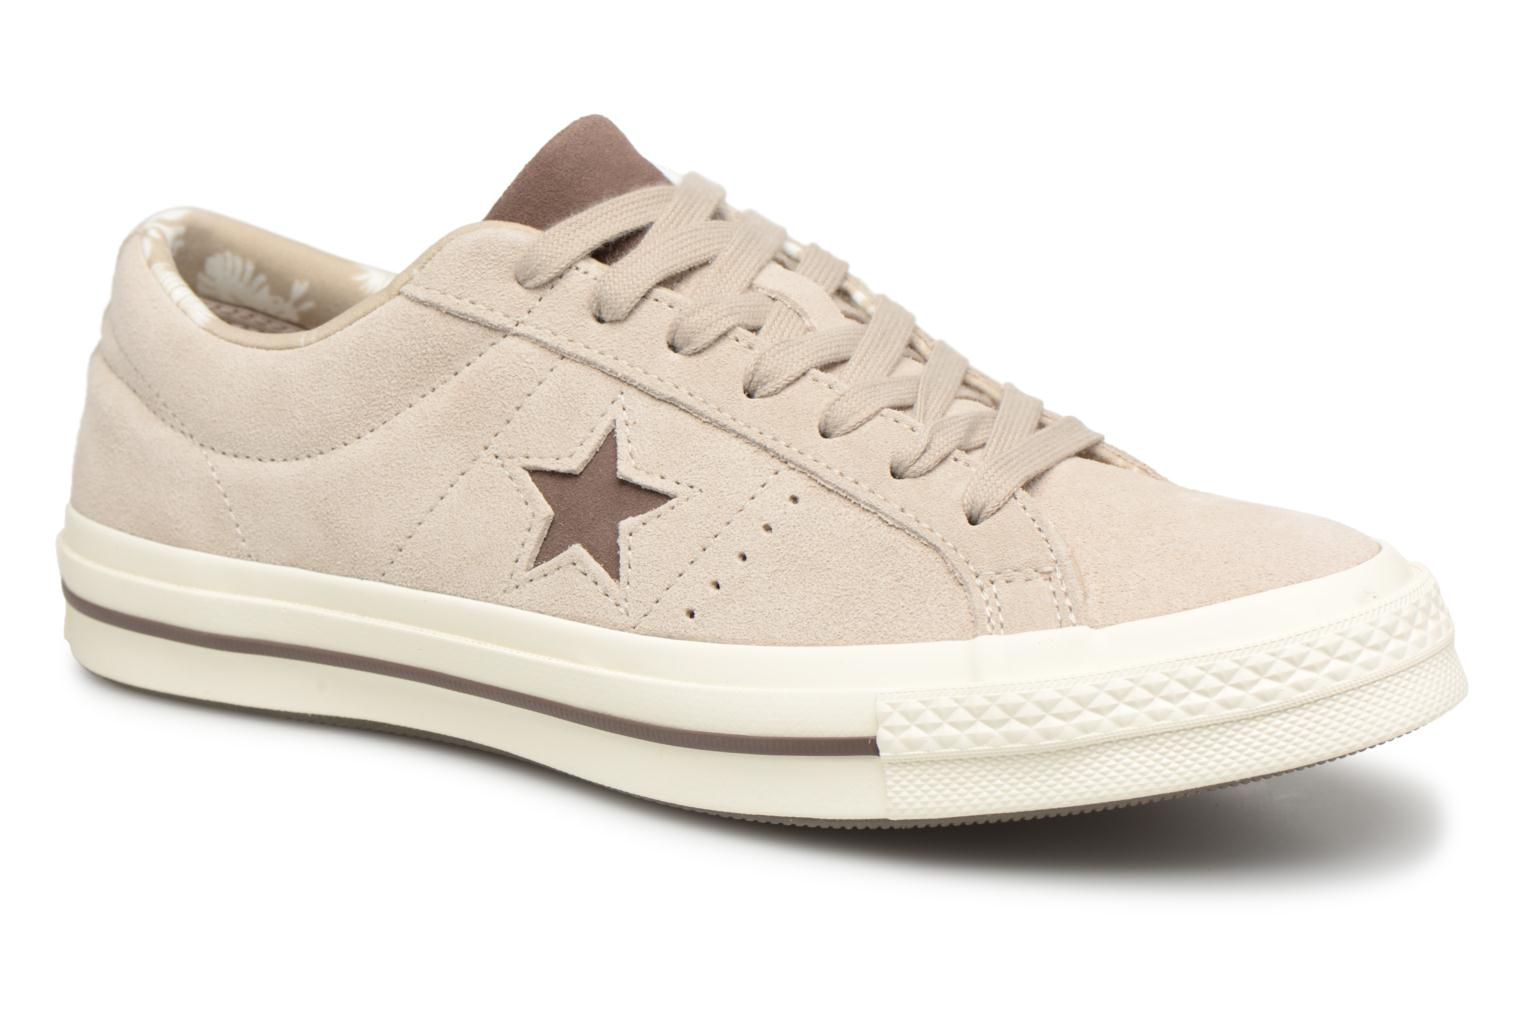 Sneakers One Star Tropical Feet Ox by ConverseConverseBeigePaar schoenen - Sneakers88875554129640Nubuck